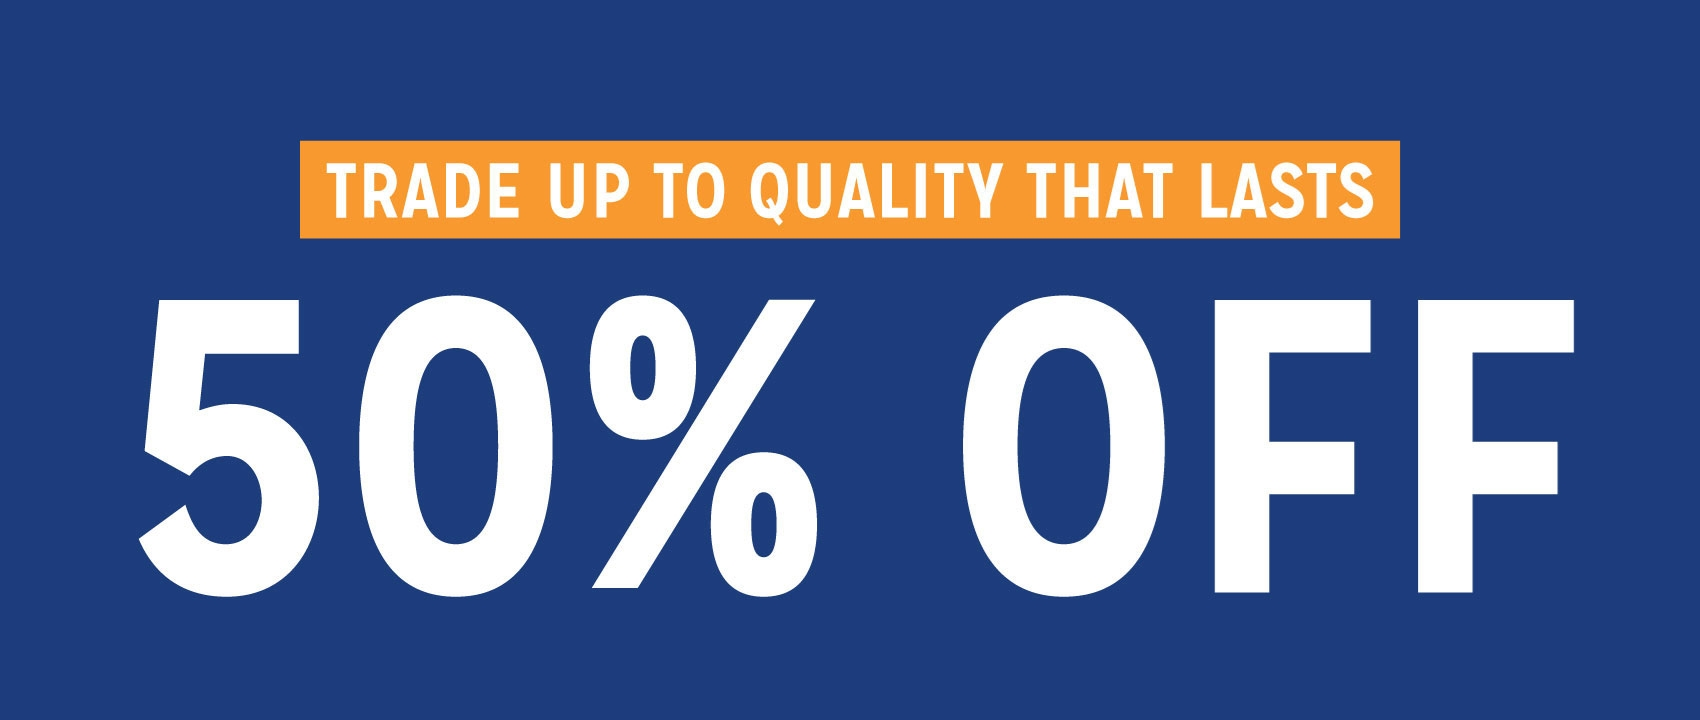 Trade Up To Quality That Lasts 50% Off